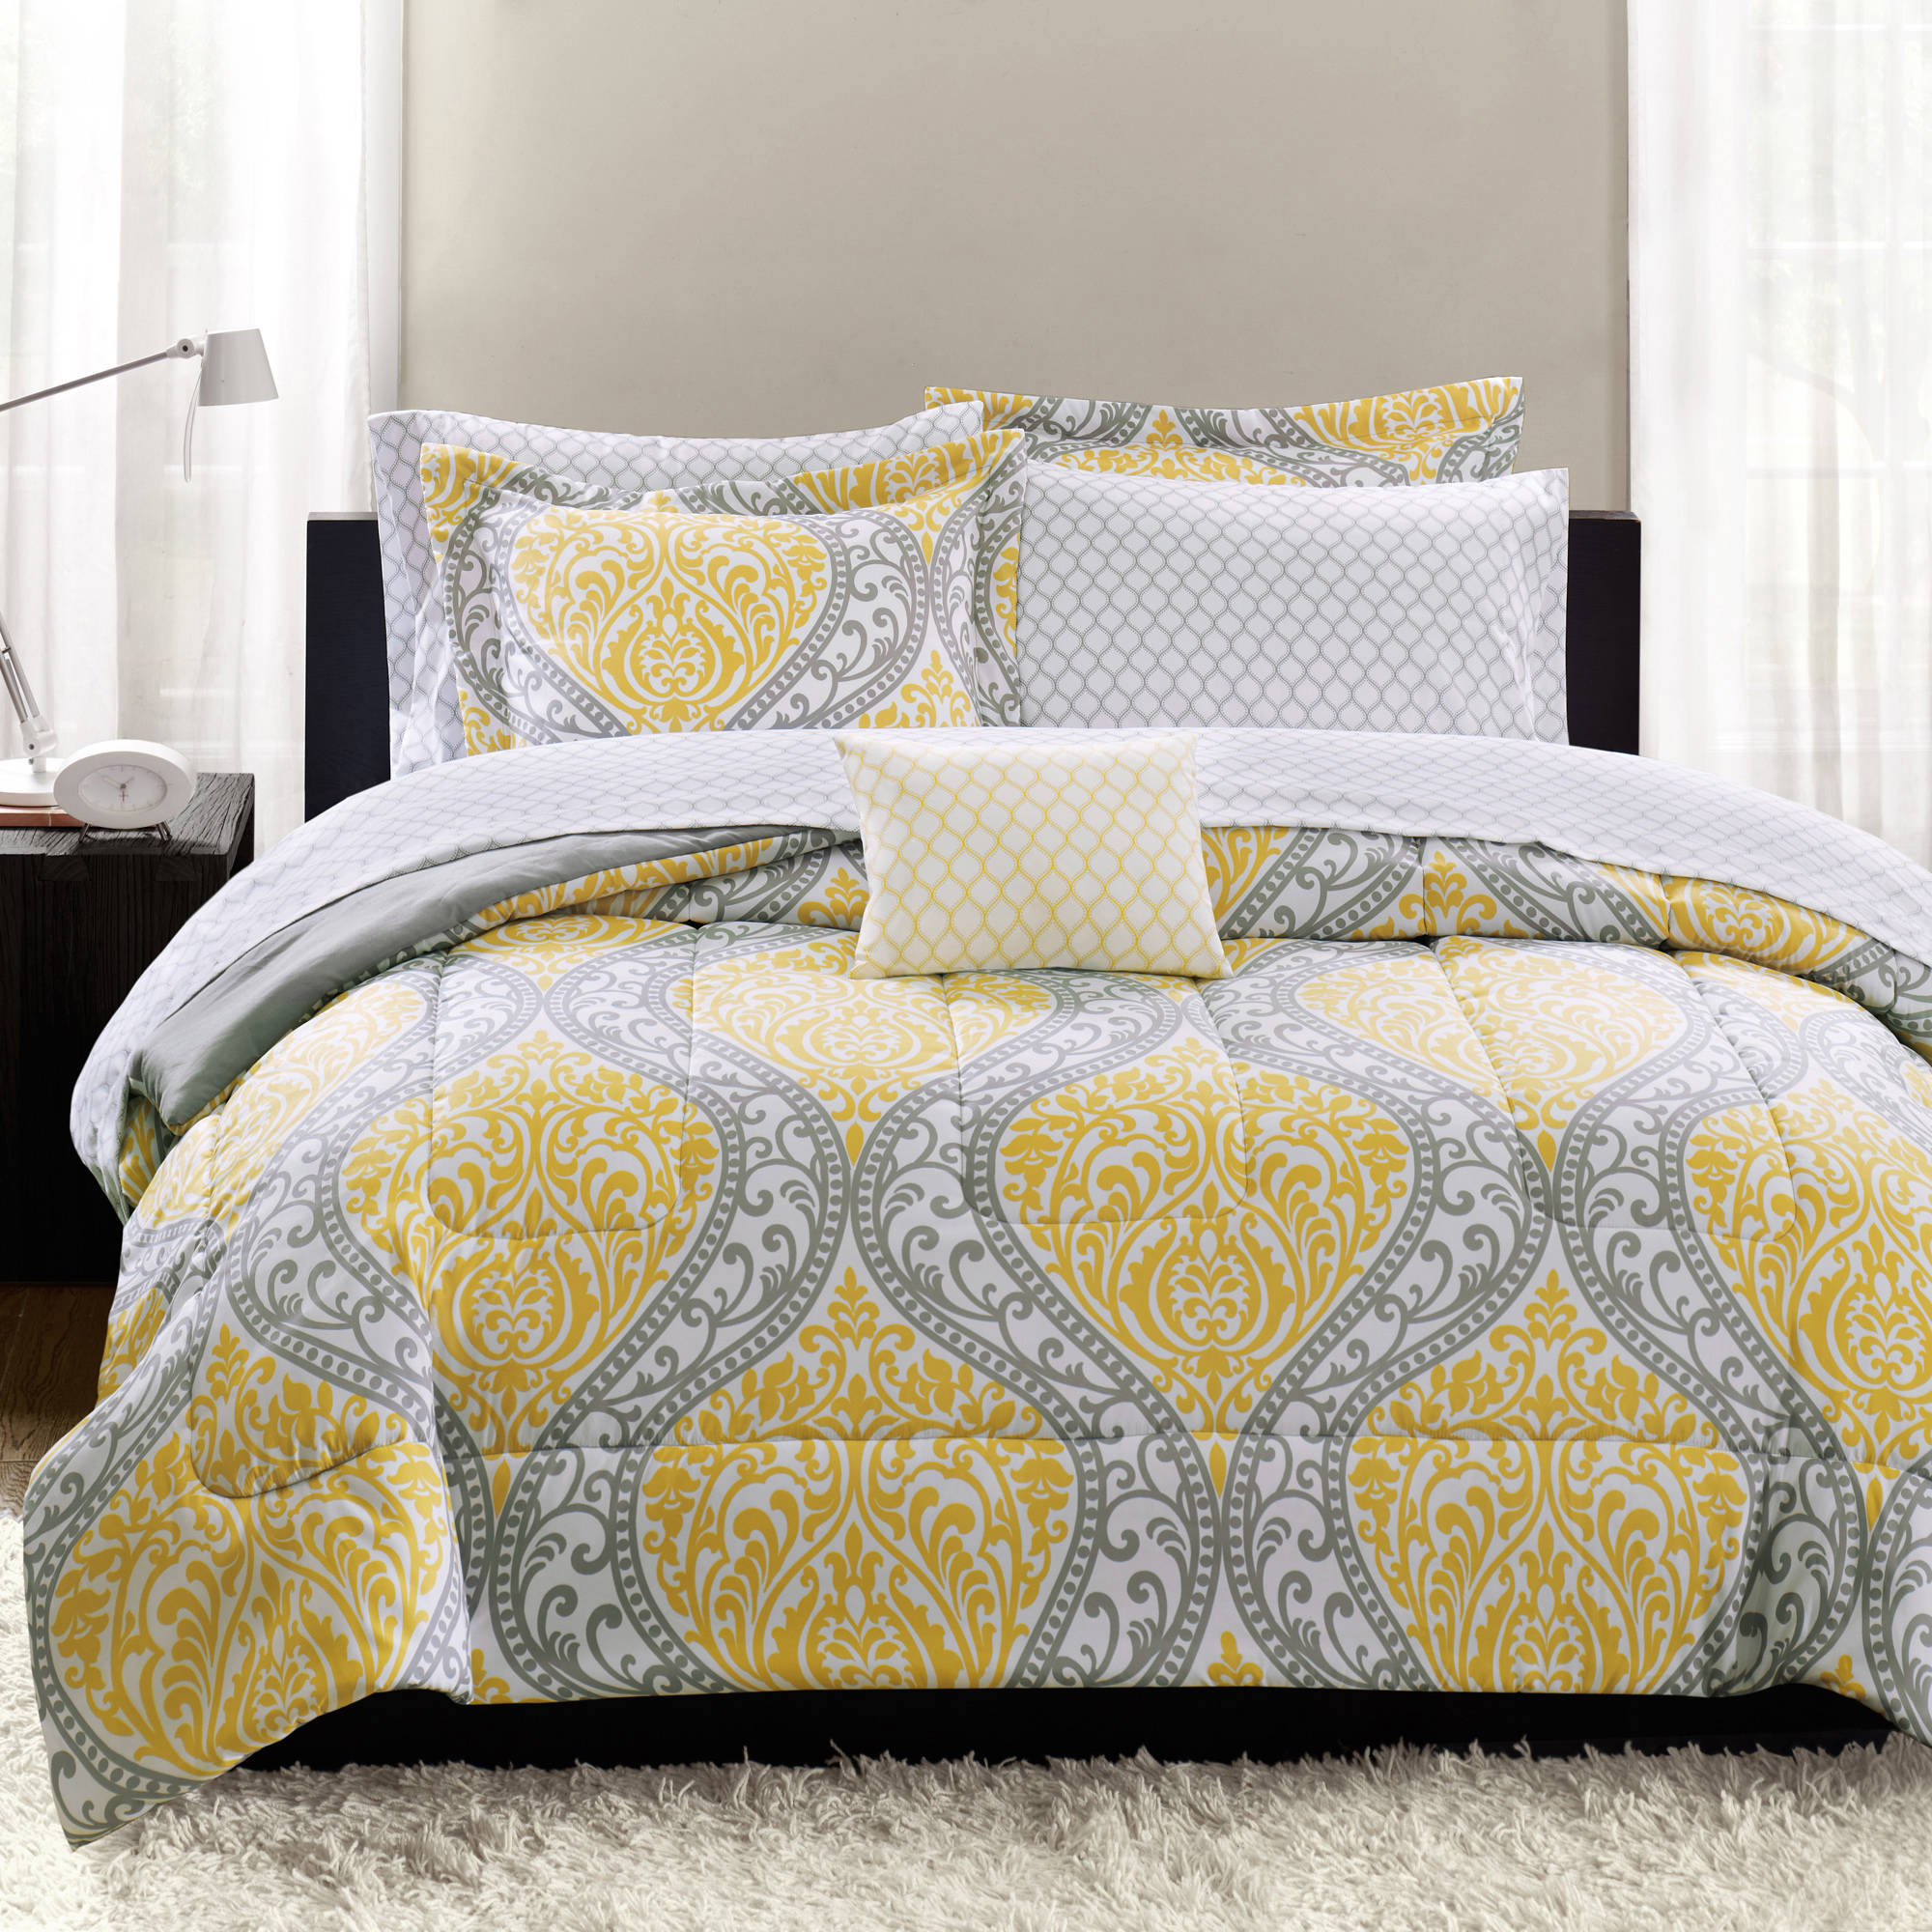 Wonderful Mainstays Yellow Damask Coordinated Bedding Set Bed in a Bag  IR75